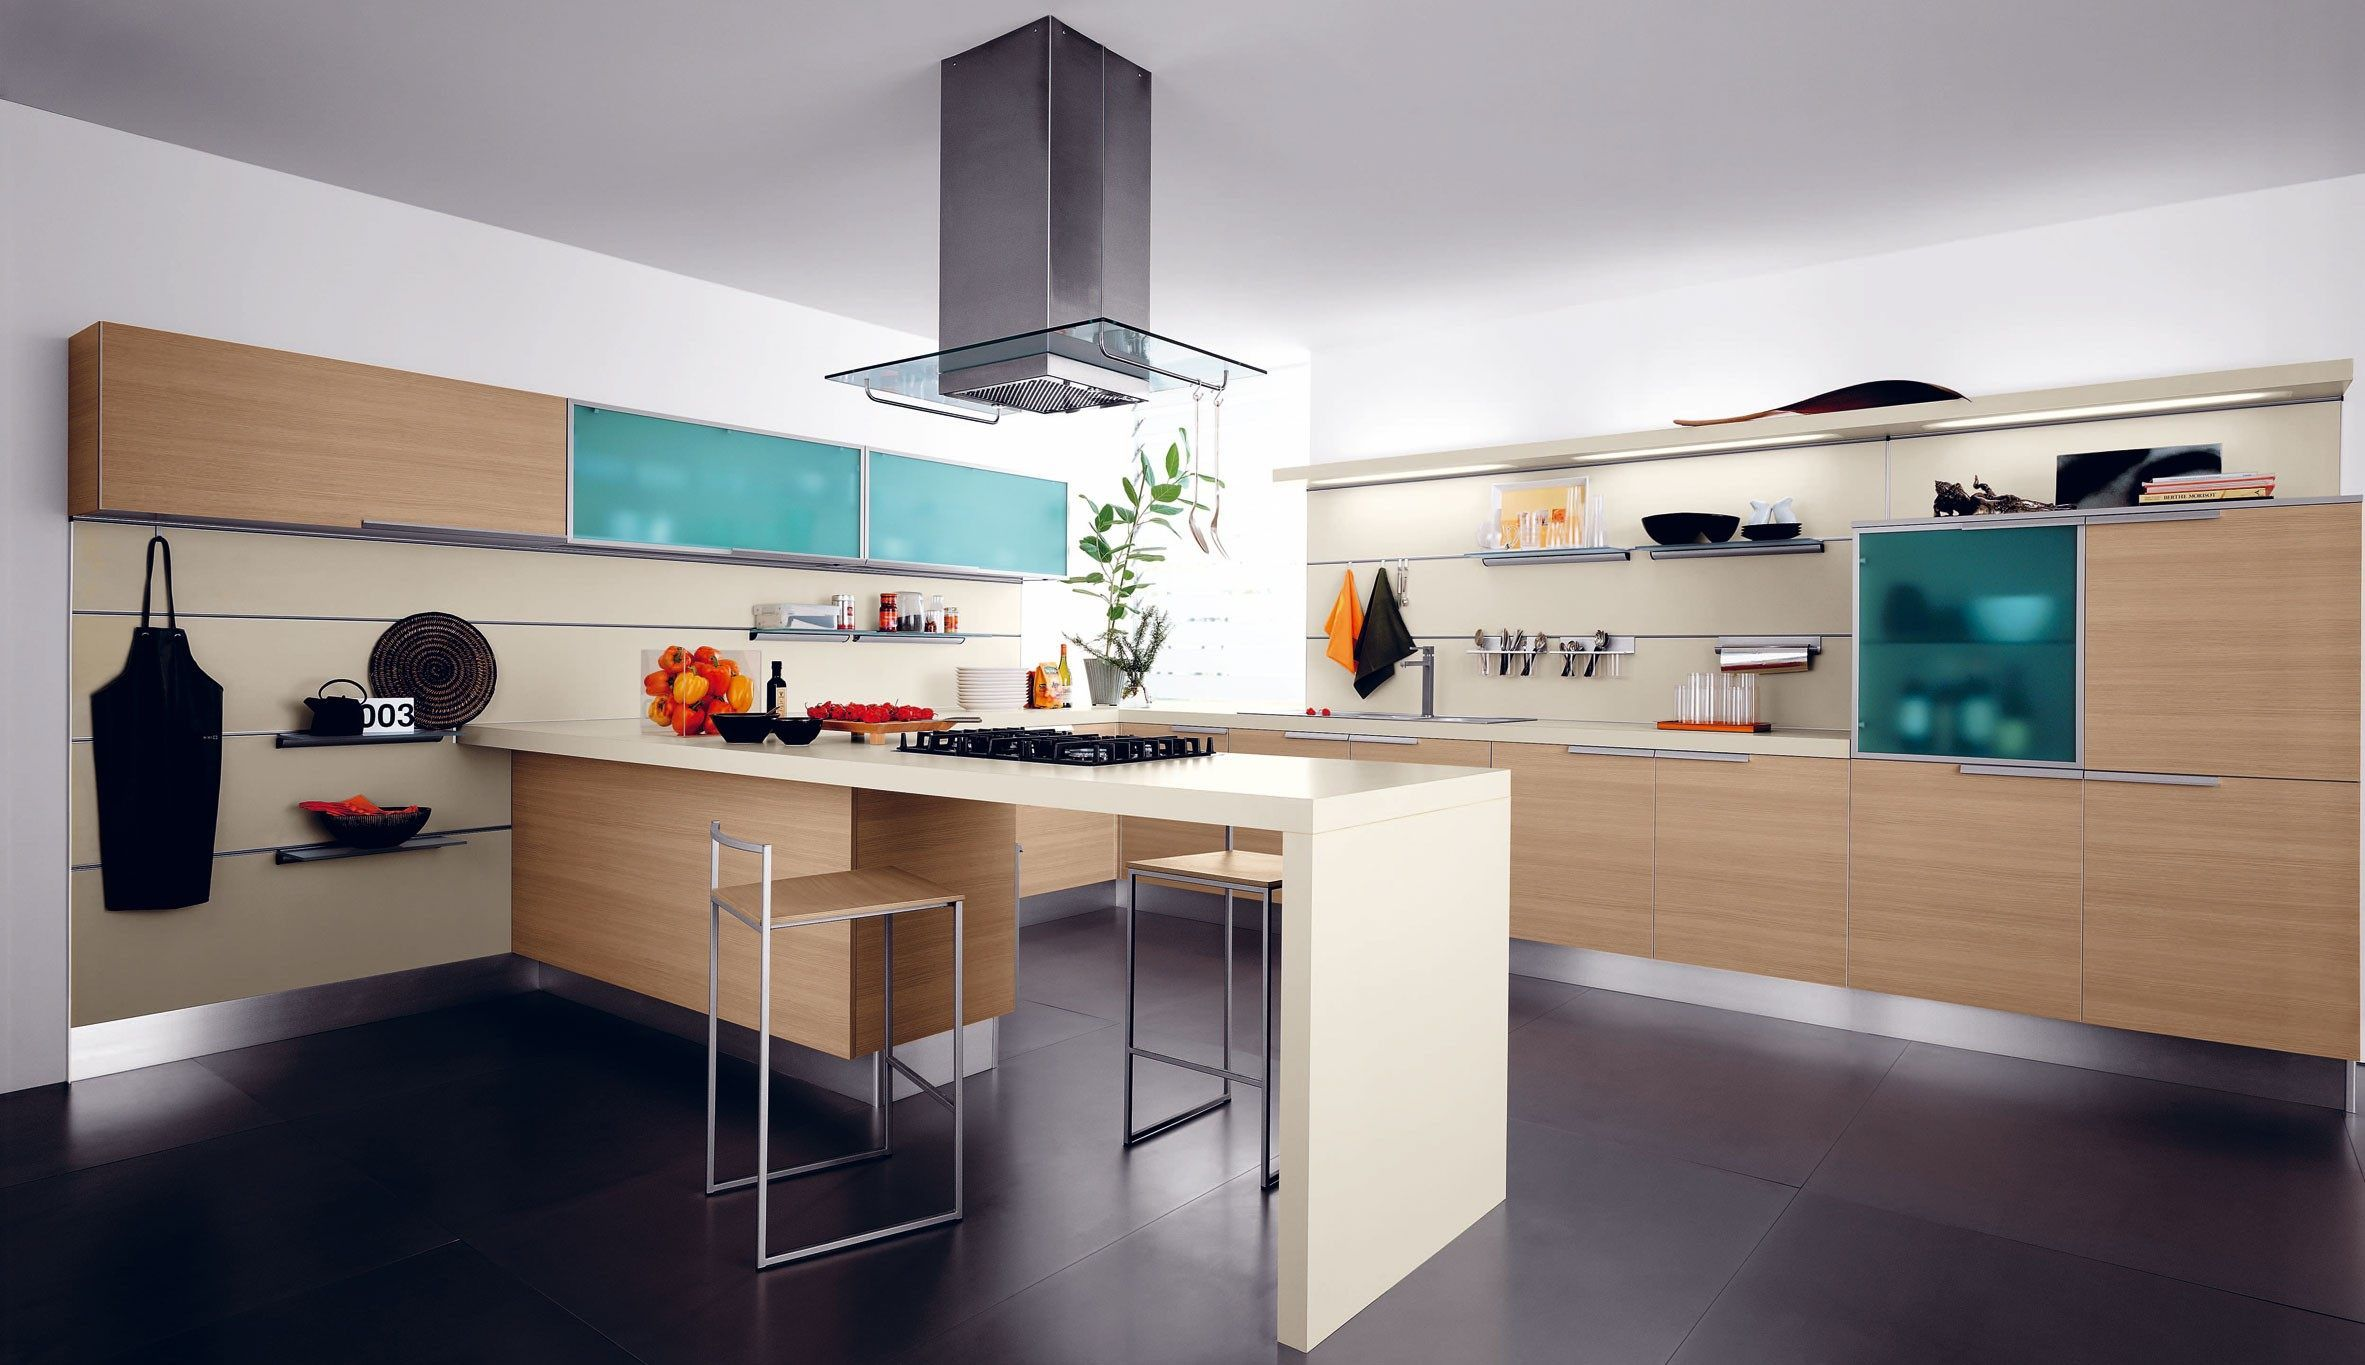 contemporary kitchen decorating ideas,Contemporary Kitchen Decor,Kitchen cabinets